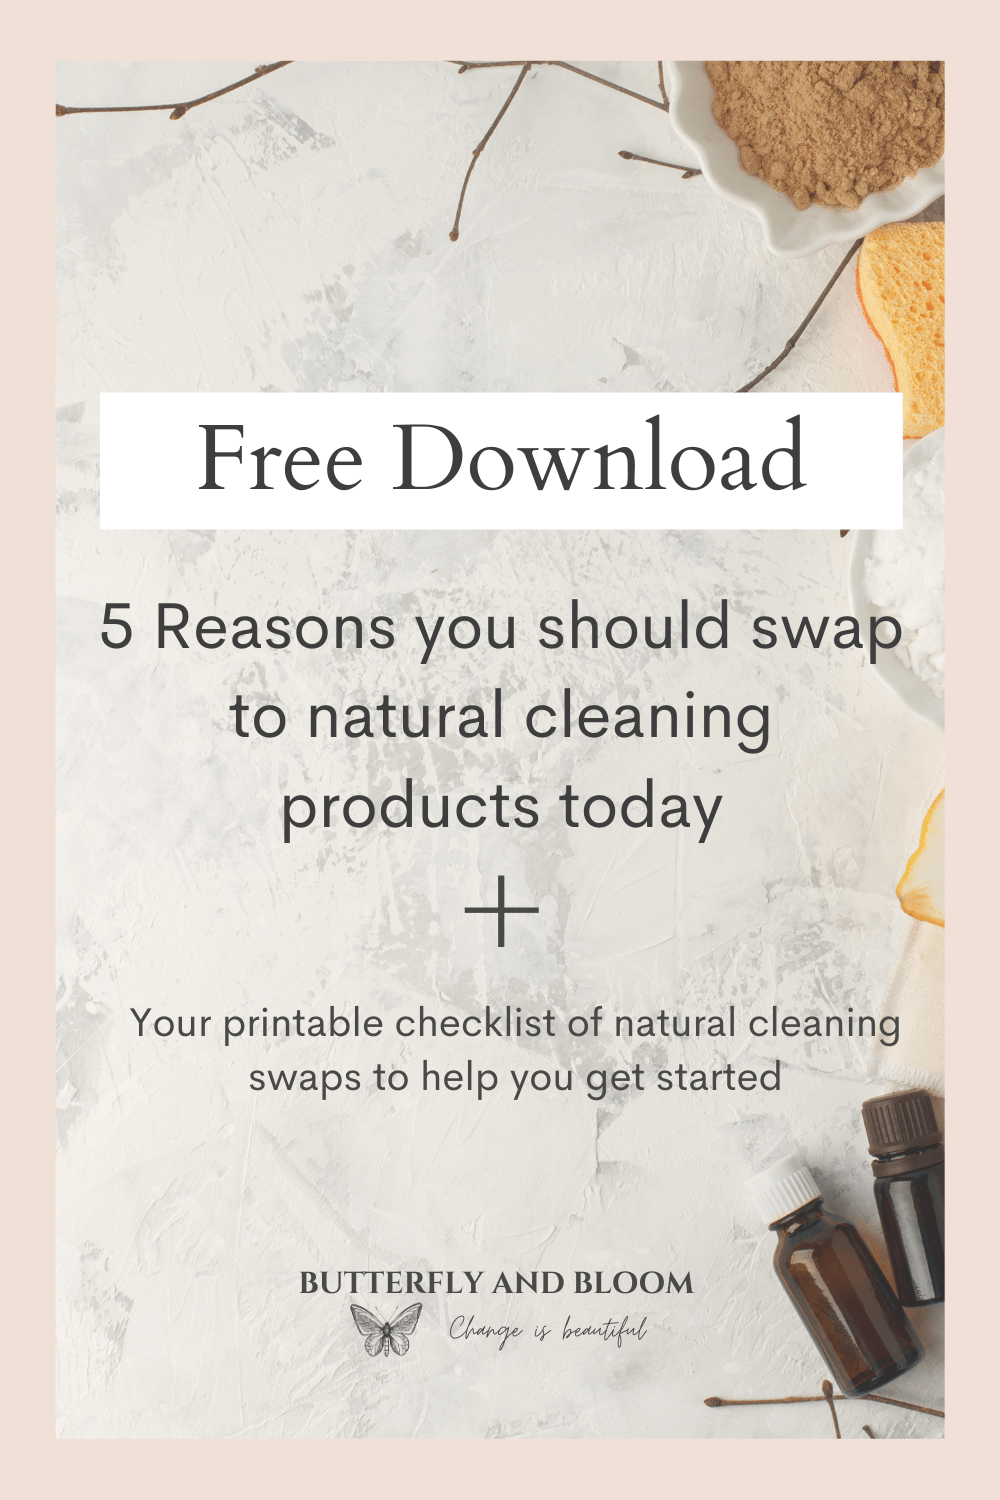 Free Digital Download on natural cleaning products